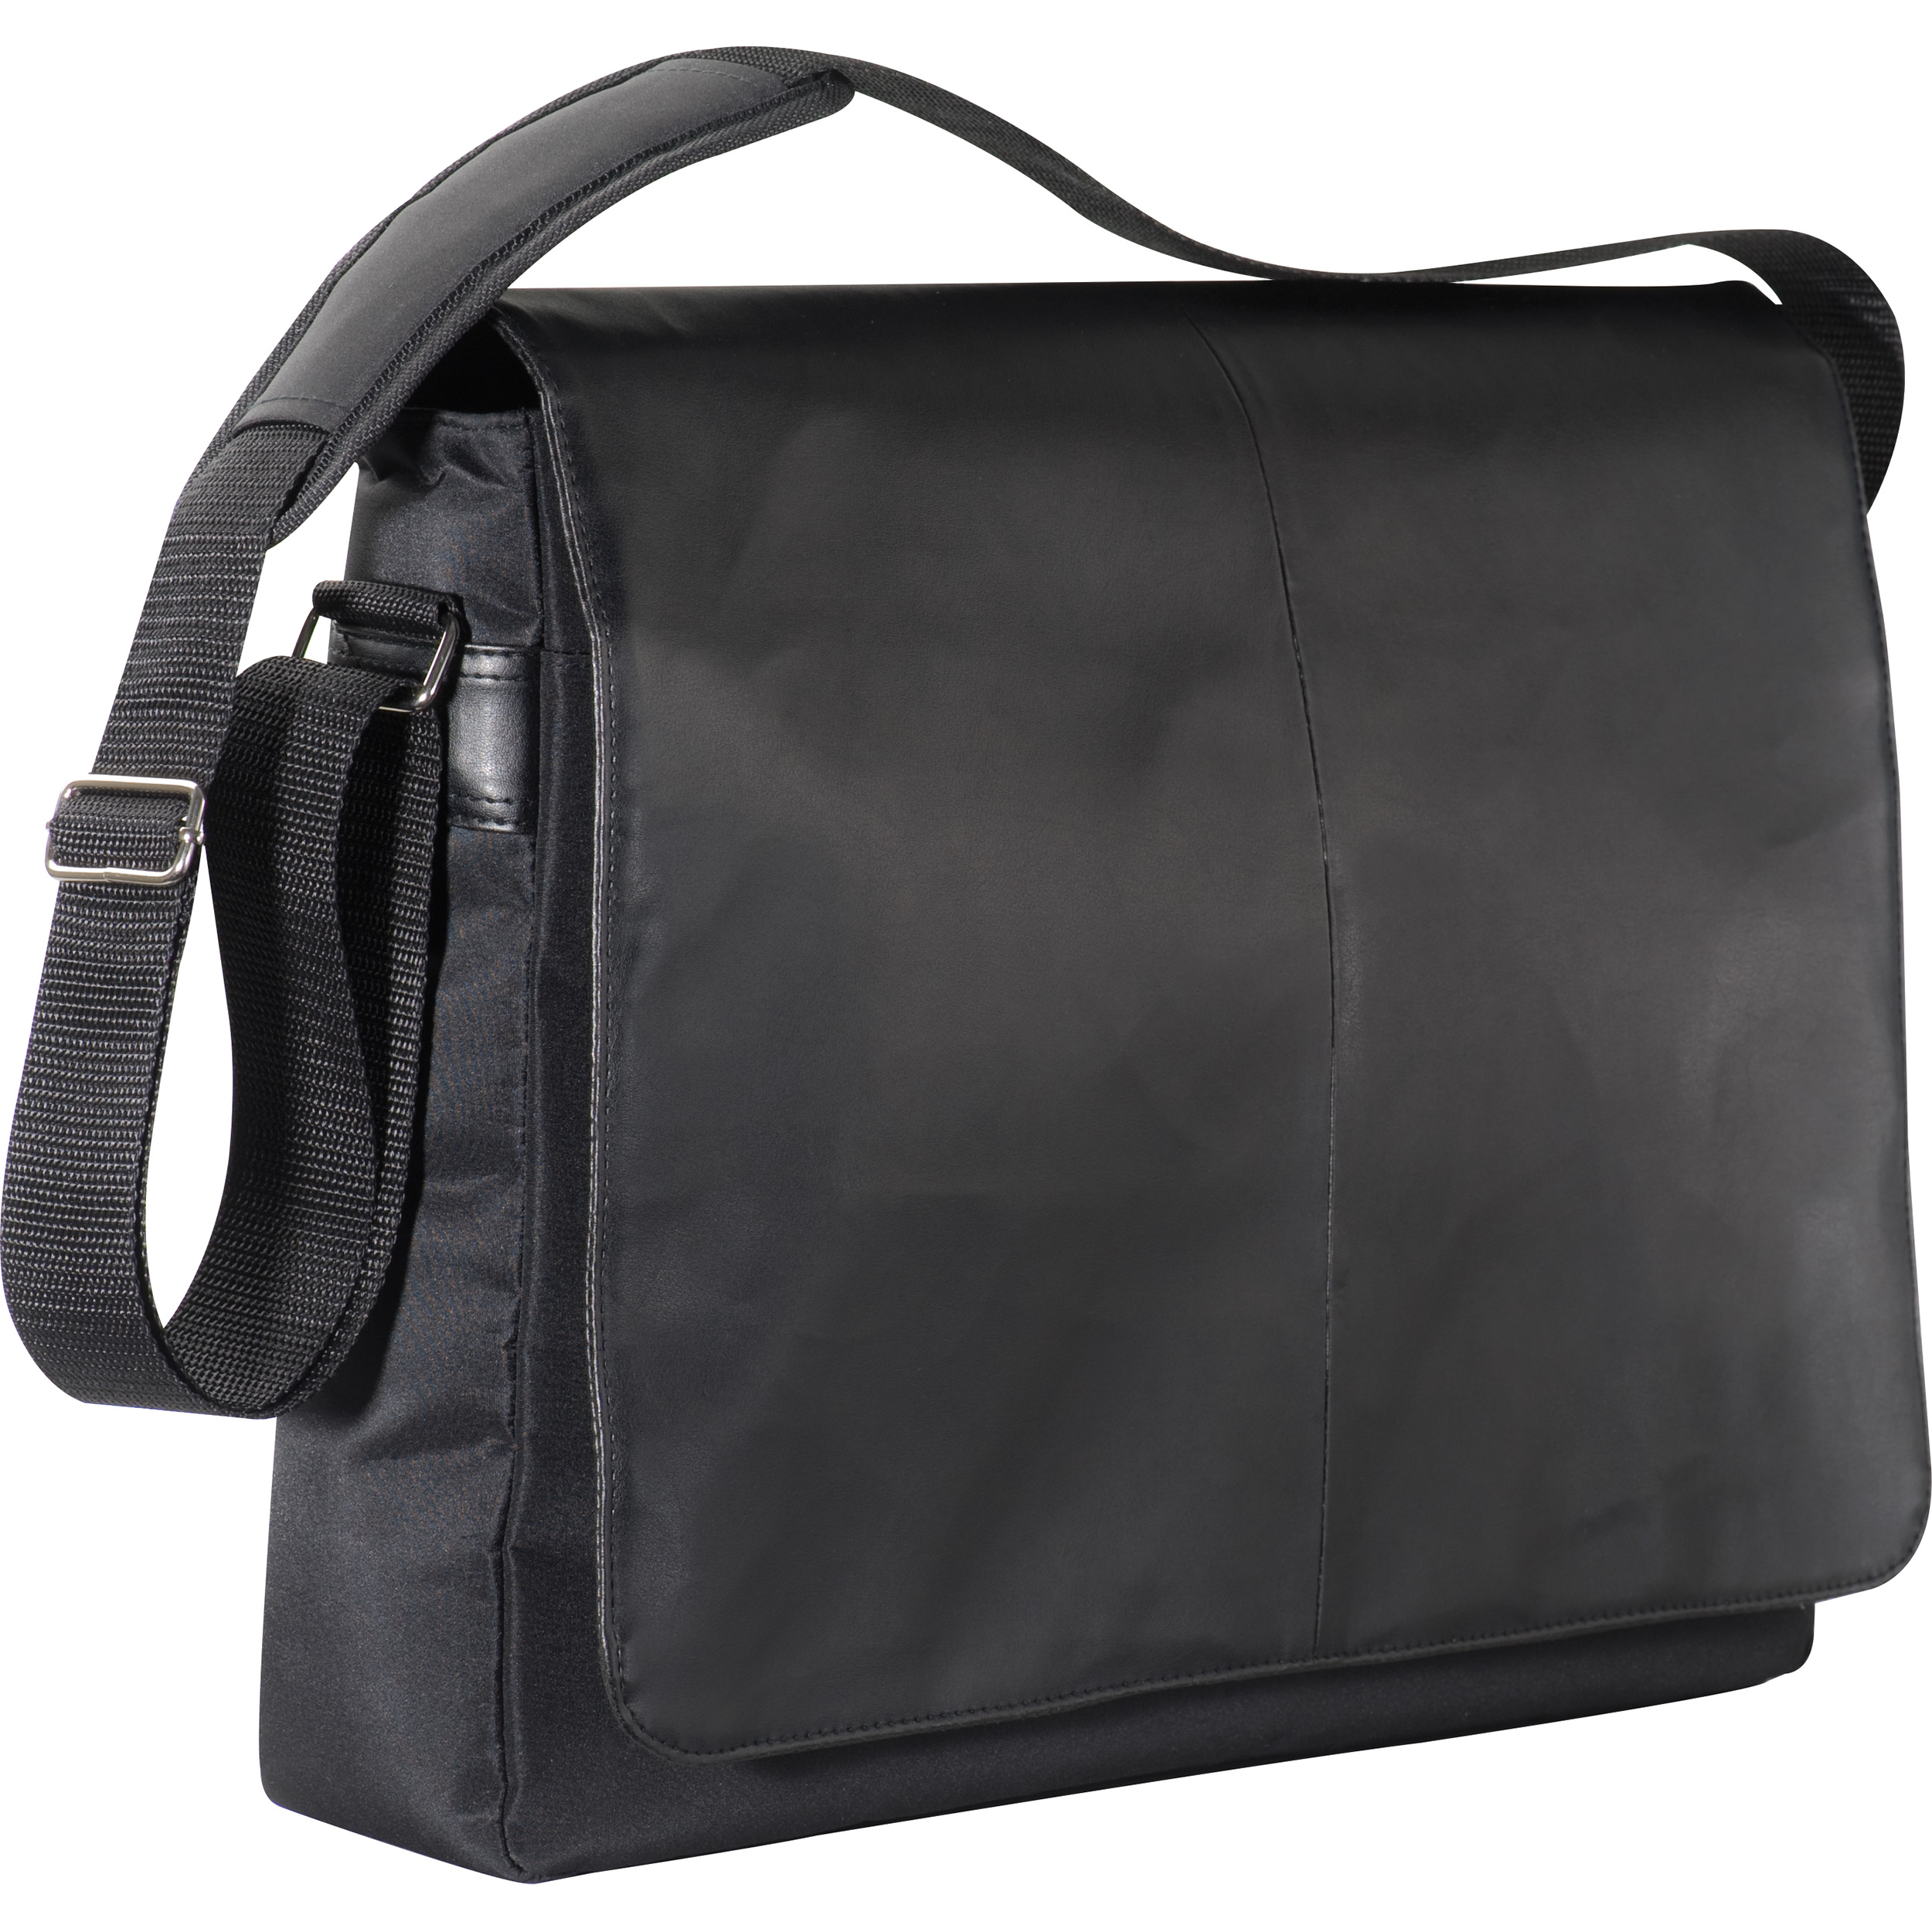 Laptop bag with black PVC rollover